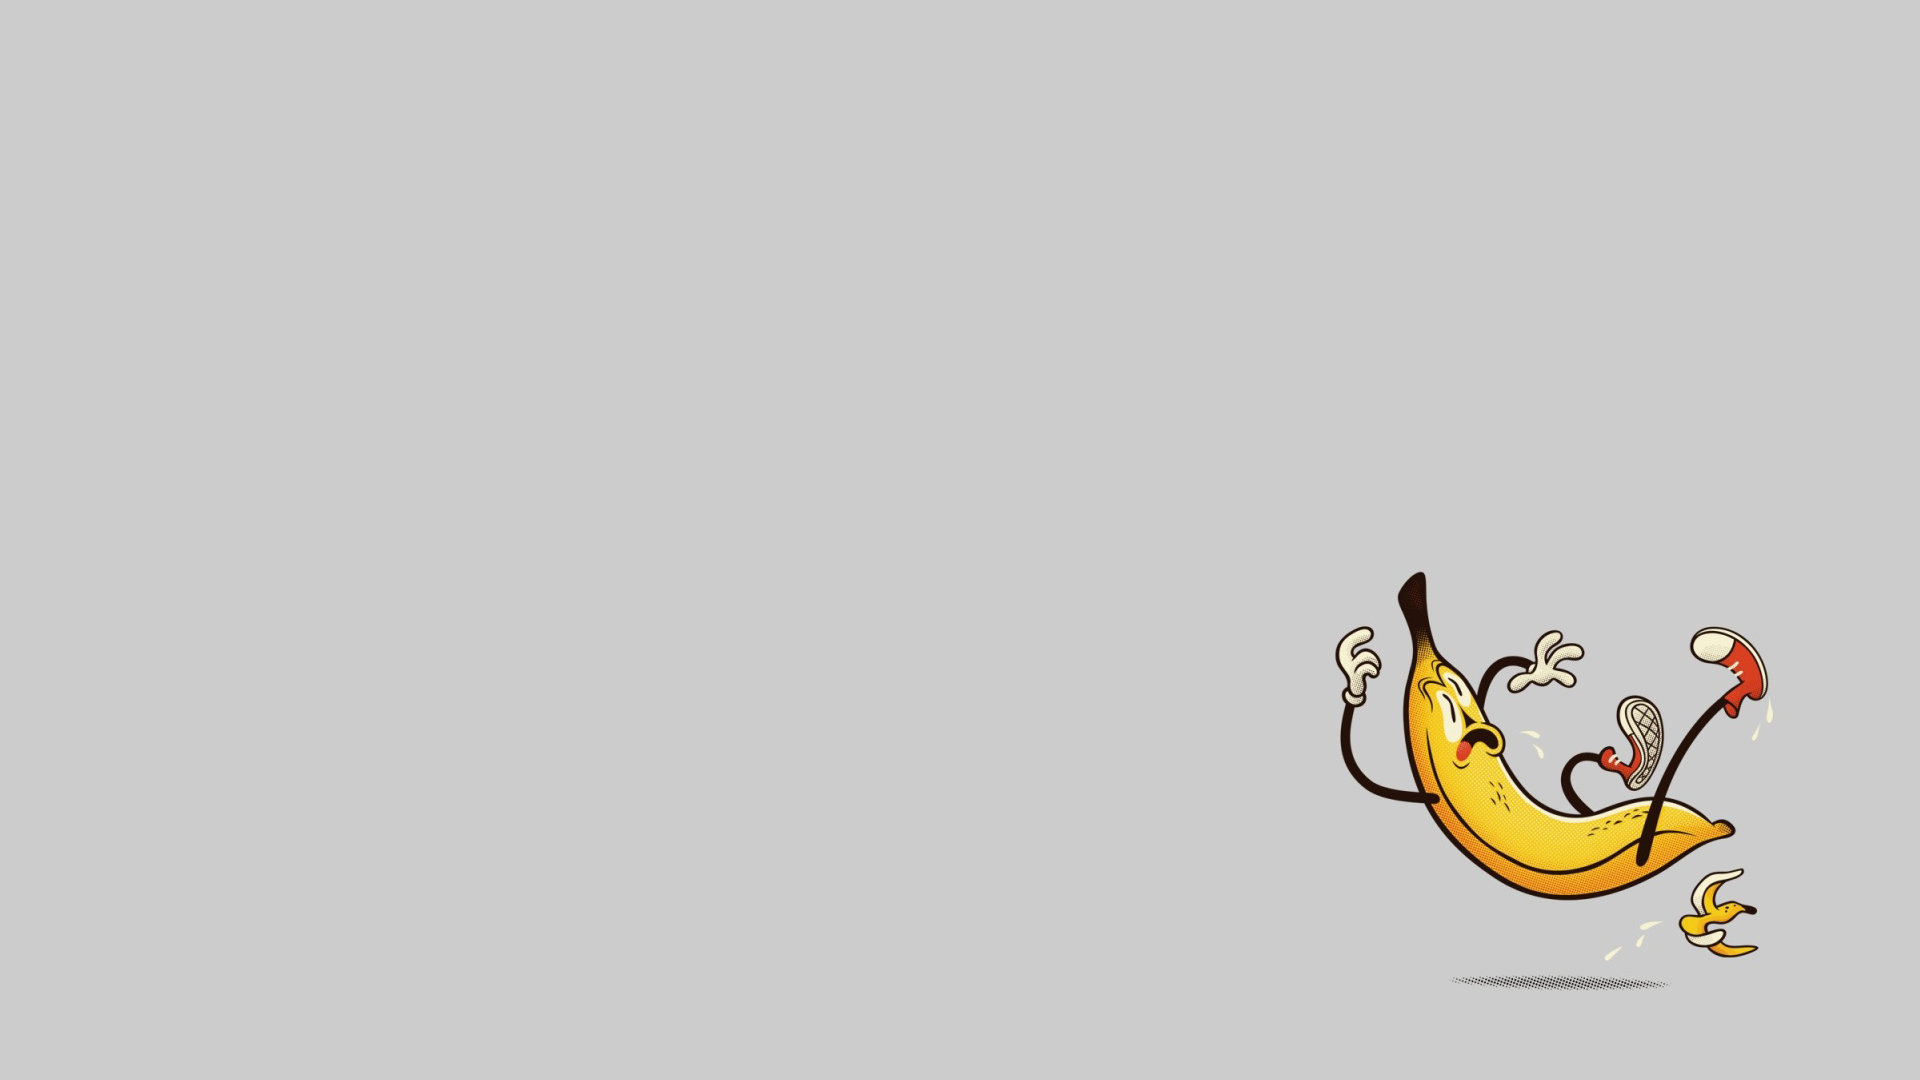 Funny Food Wallpapers 1920x1080 Full Hd 1080p Desktop Backgrounds